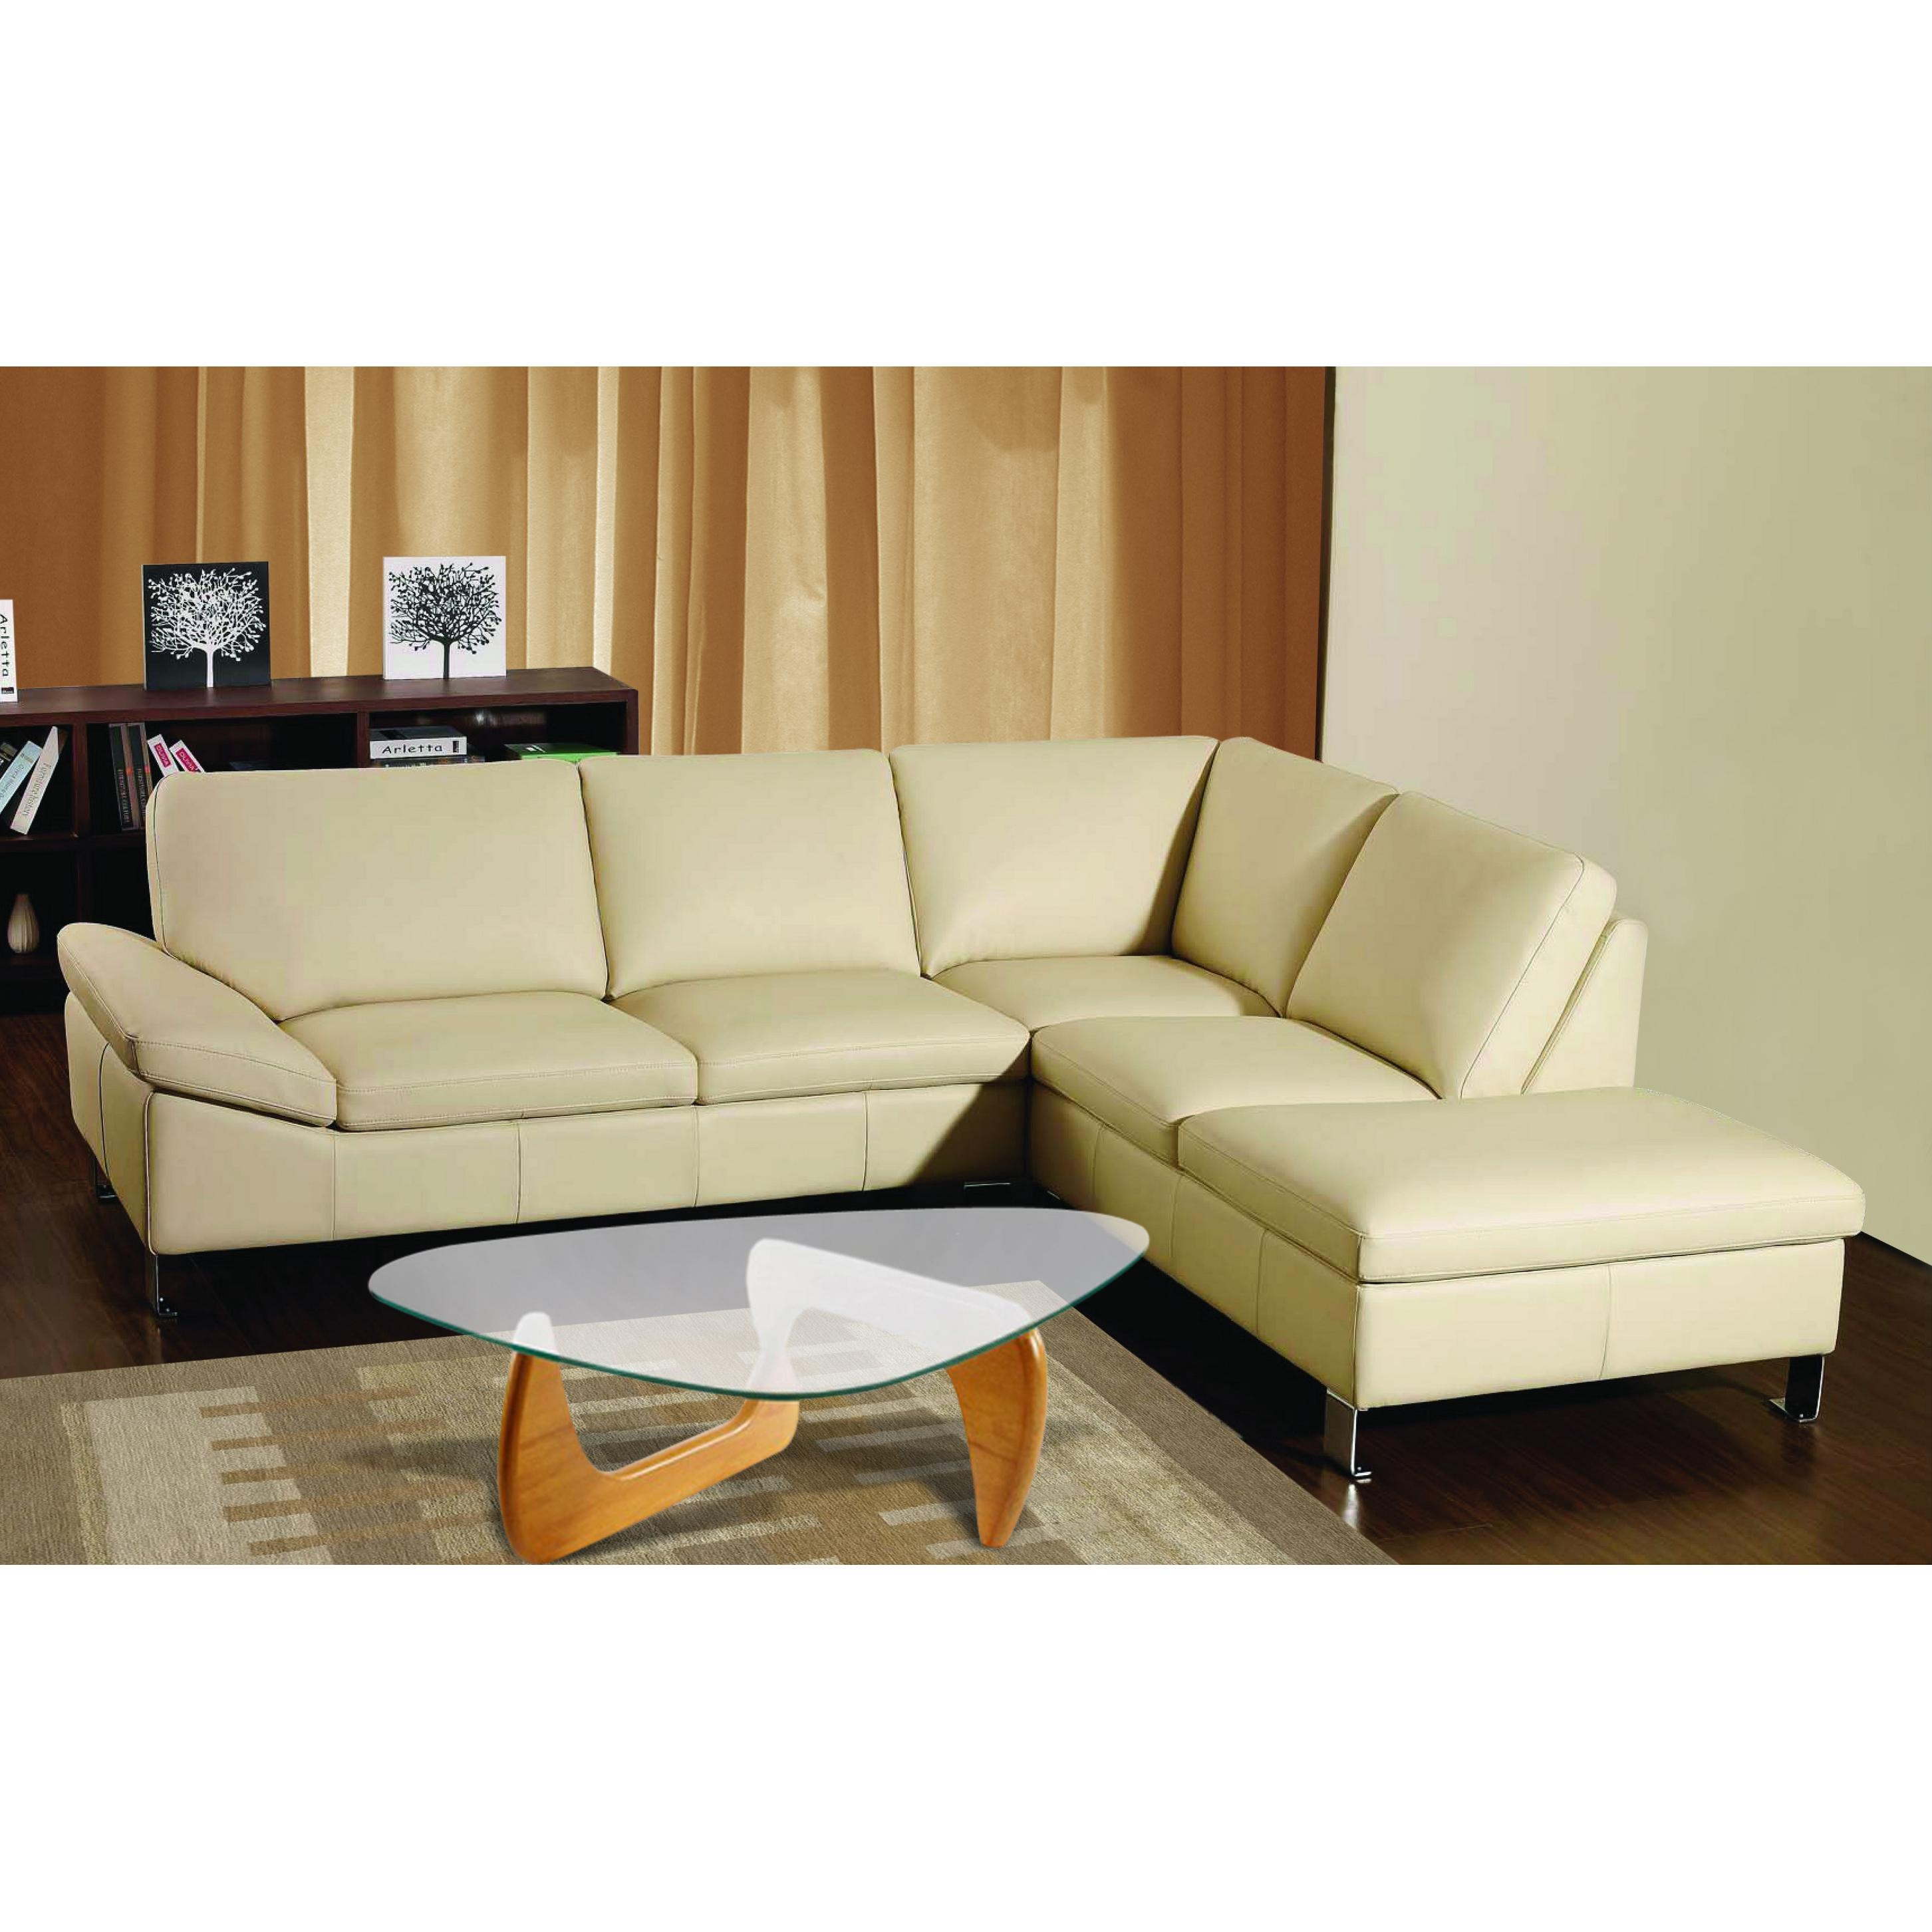 L Shaped Leather Sectional Sofa – Leather Sectional Sofa Throughout Leather L Shaped Sectional Sofas (Image 12 of 20)